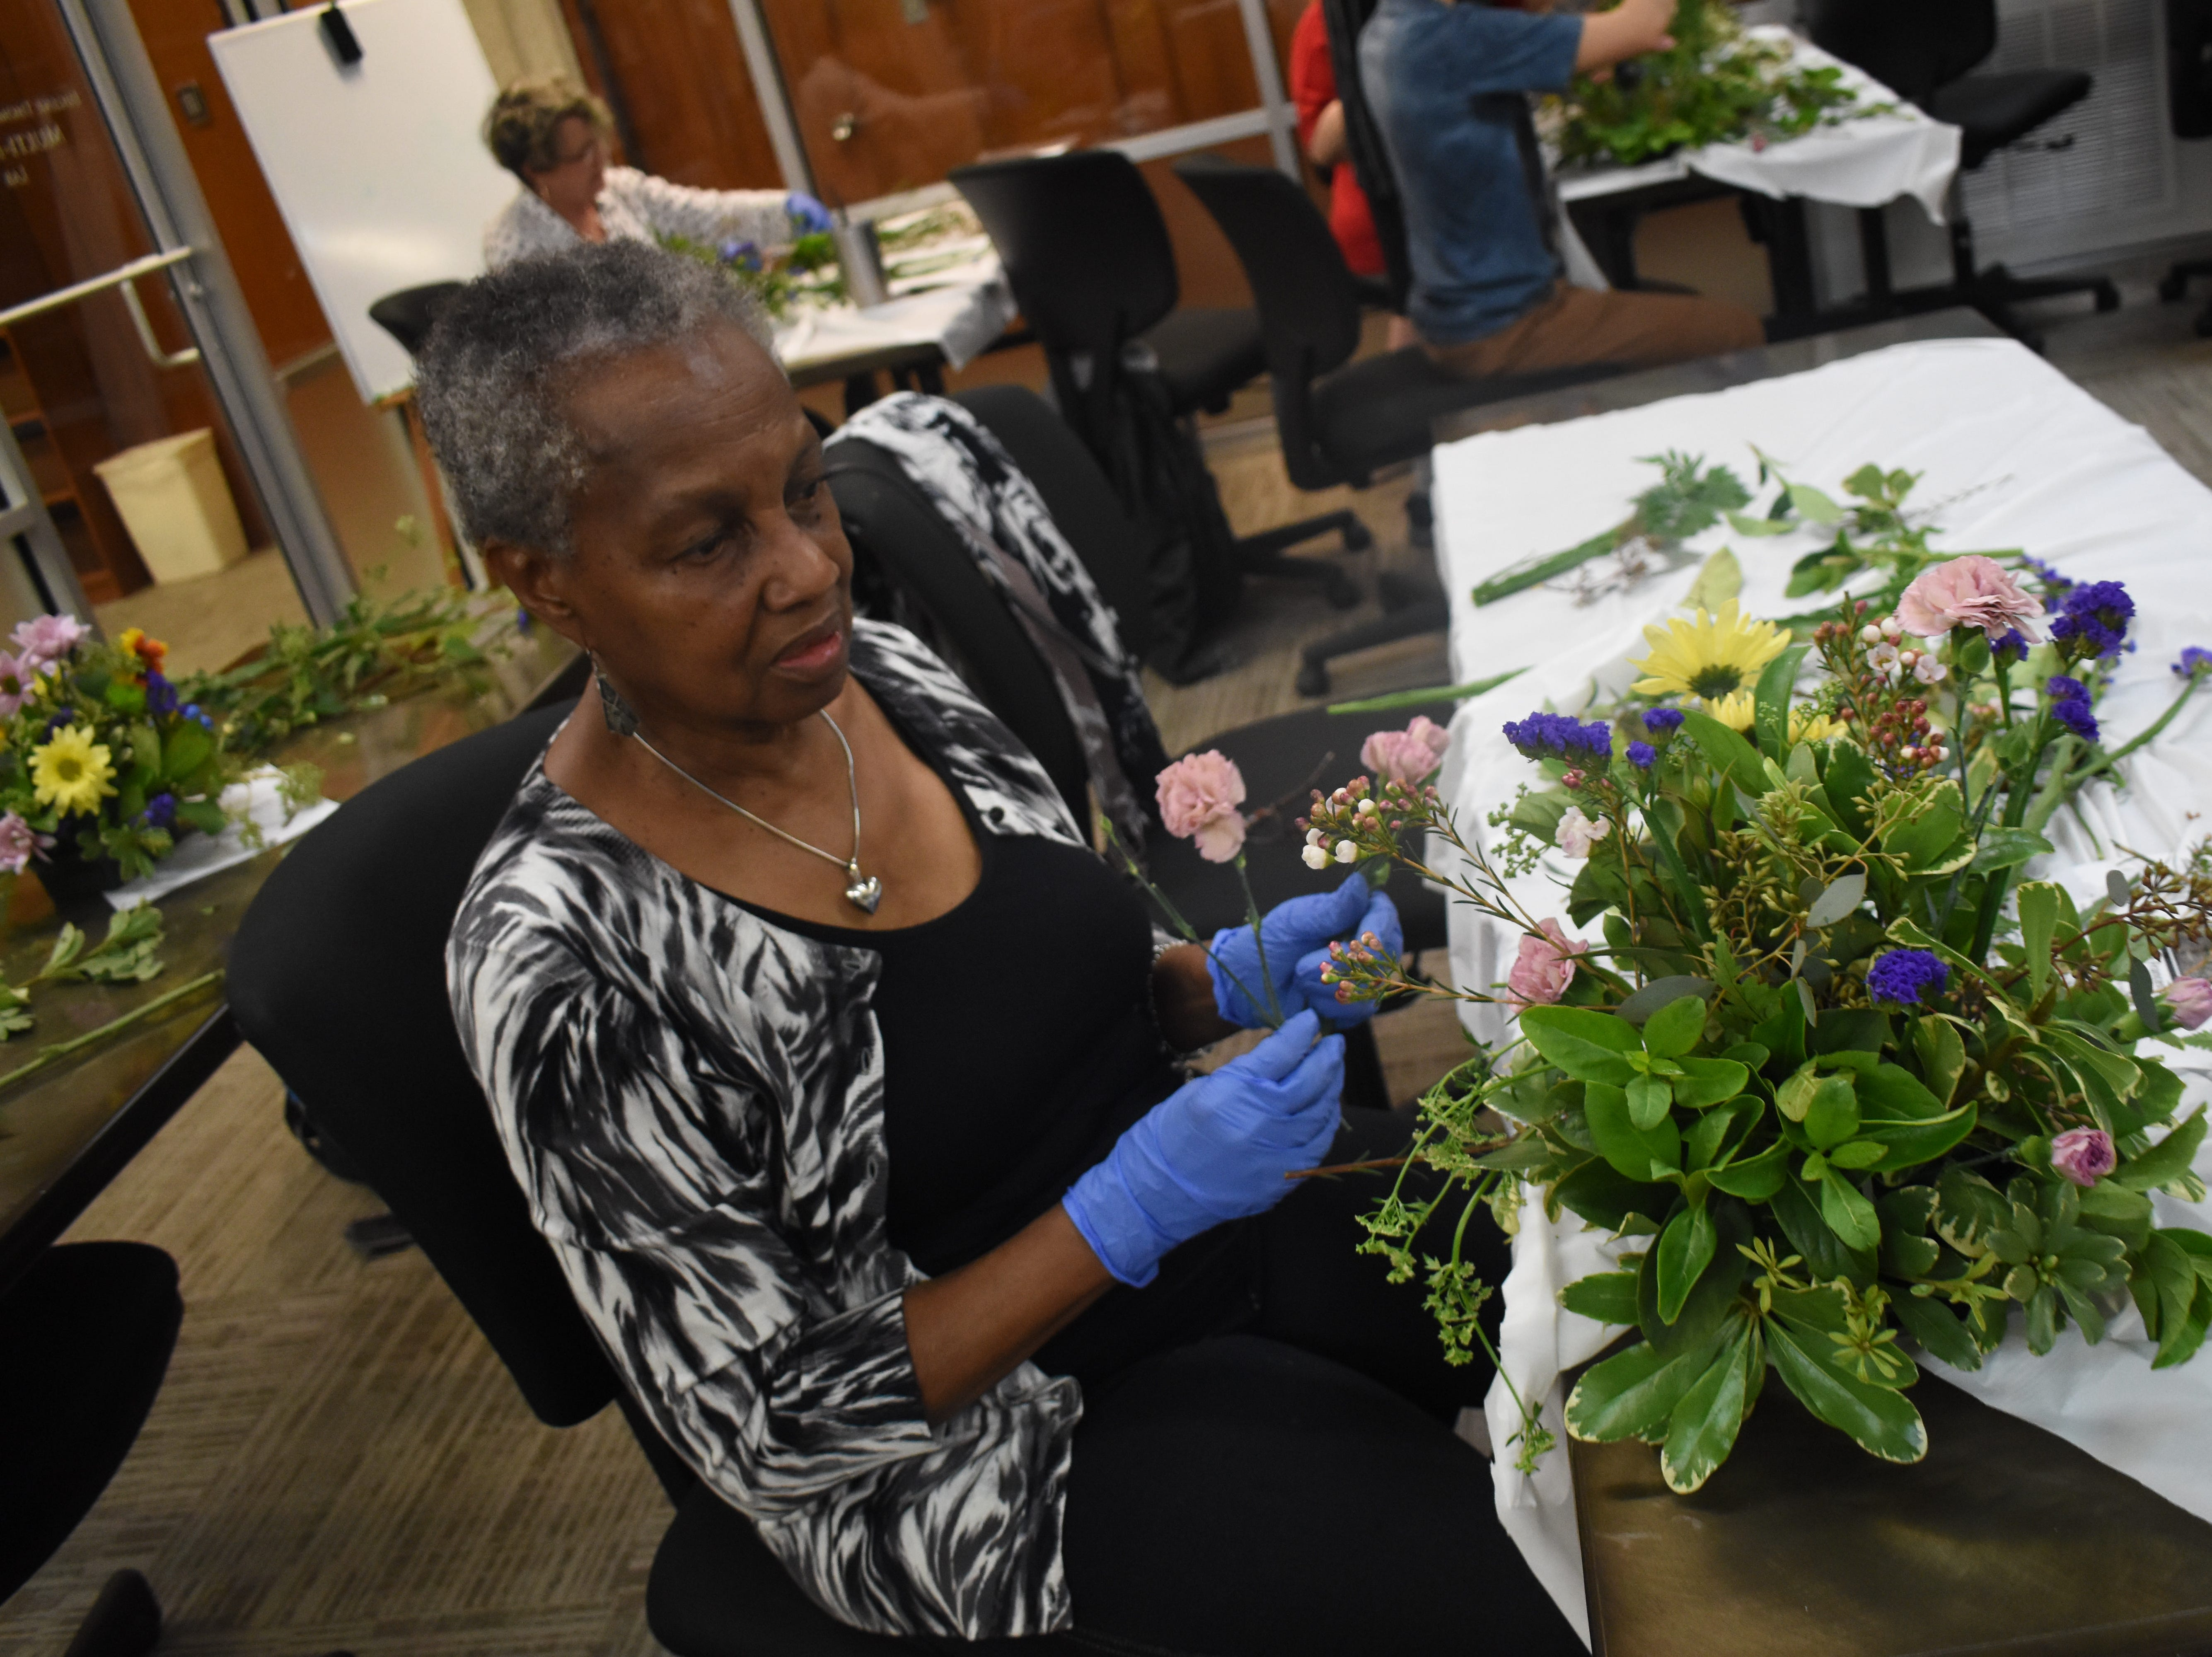 "Jean Clayton works on her flower arrangement in a flower arranging class, ""Flowers For Your Sweetheart,"" taught by Frances Boudreaux, a licensed florist, at the Main Library of the Rapides Parish Library Wednesday, Feb. 6, 2019. Some of the tips Boudreaux told participants was to try various foliage to see what works best for them. She recommended cutting garden flowers in the morning when flowers are full of moisture and the are is cooler. Flowers such as roses, iris, gladioli can be cut as buds and may open later. Marigolds, delphiniums and dianthus or sweet William, must be cut with they are open. Some of the common foliage that were used in the arrangements that can be found in Central Louisiana are pittosporum, either variegated or solid green; baker's fern or leather leaf; sweet viburnum, sweet olive, rosemary, ginger, evergreen boughs, holly, aspidistra or iron plant, and herbs such as rosemary, lavender, mint, basil and lemon balm. 